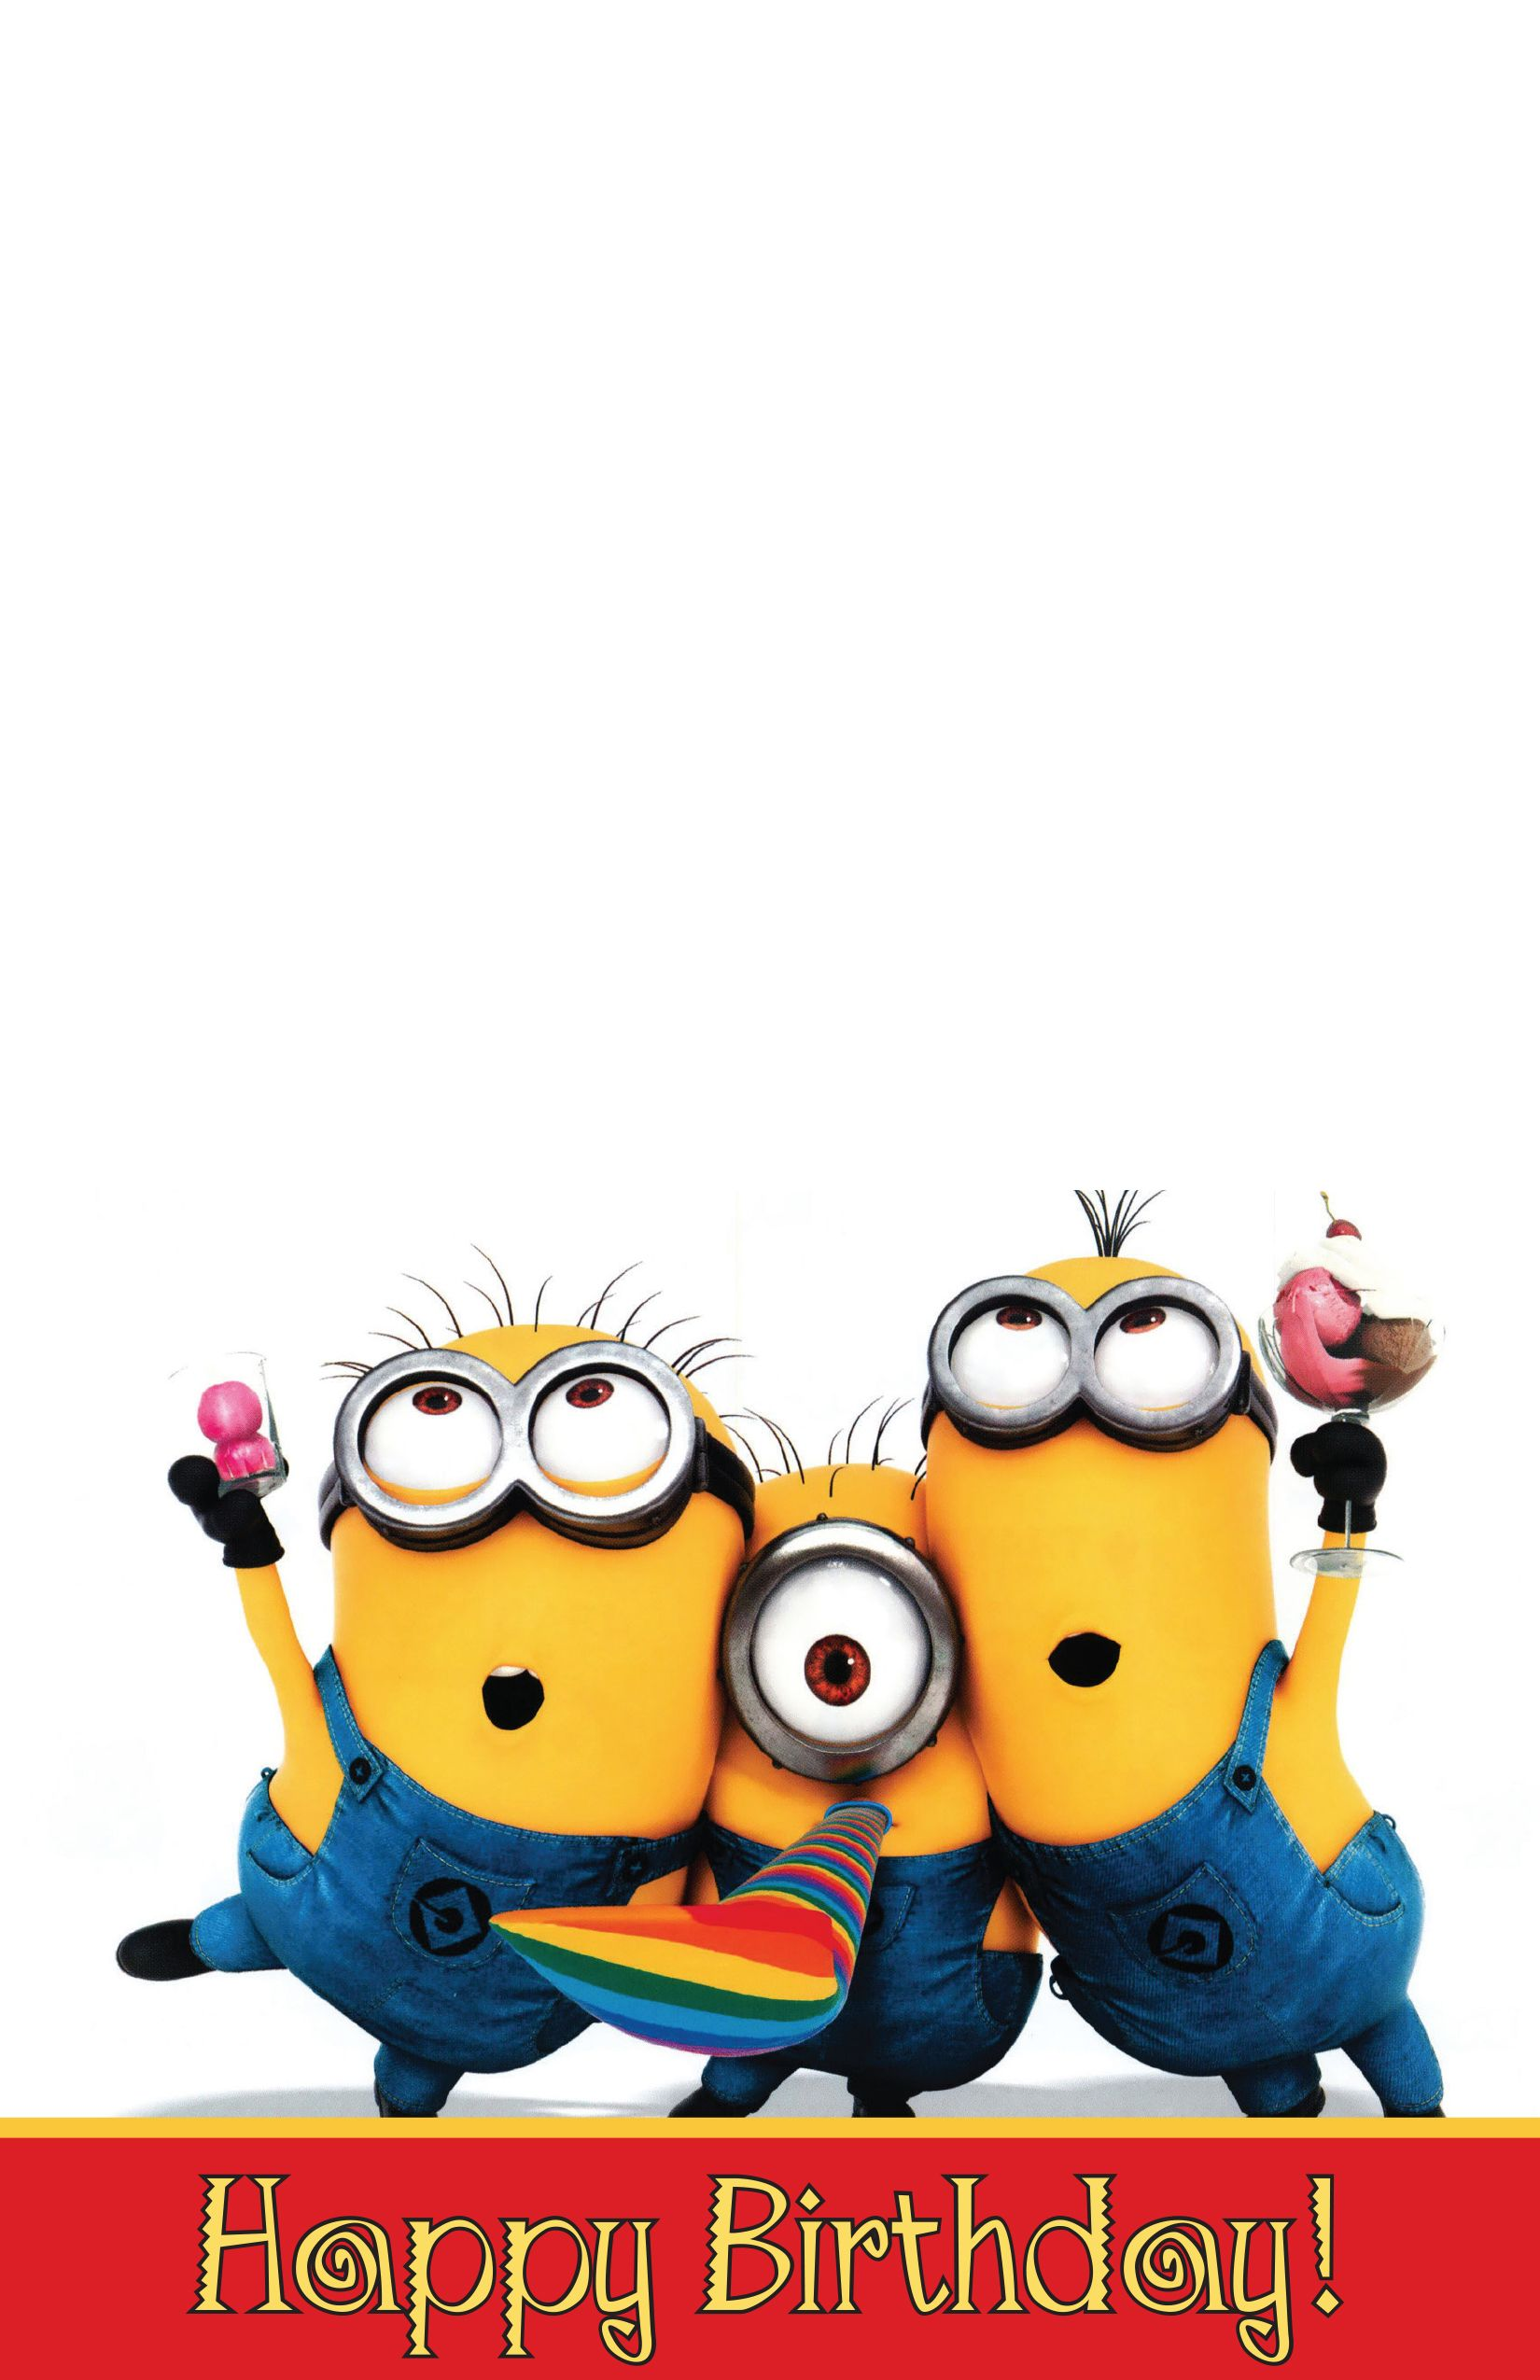 Free Minion Birthday Card A 7 Fold Over To Size 5 5 X 4 25